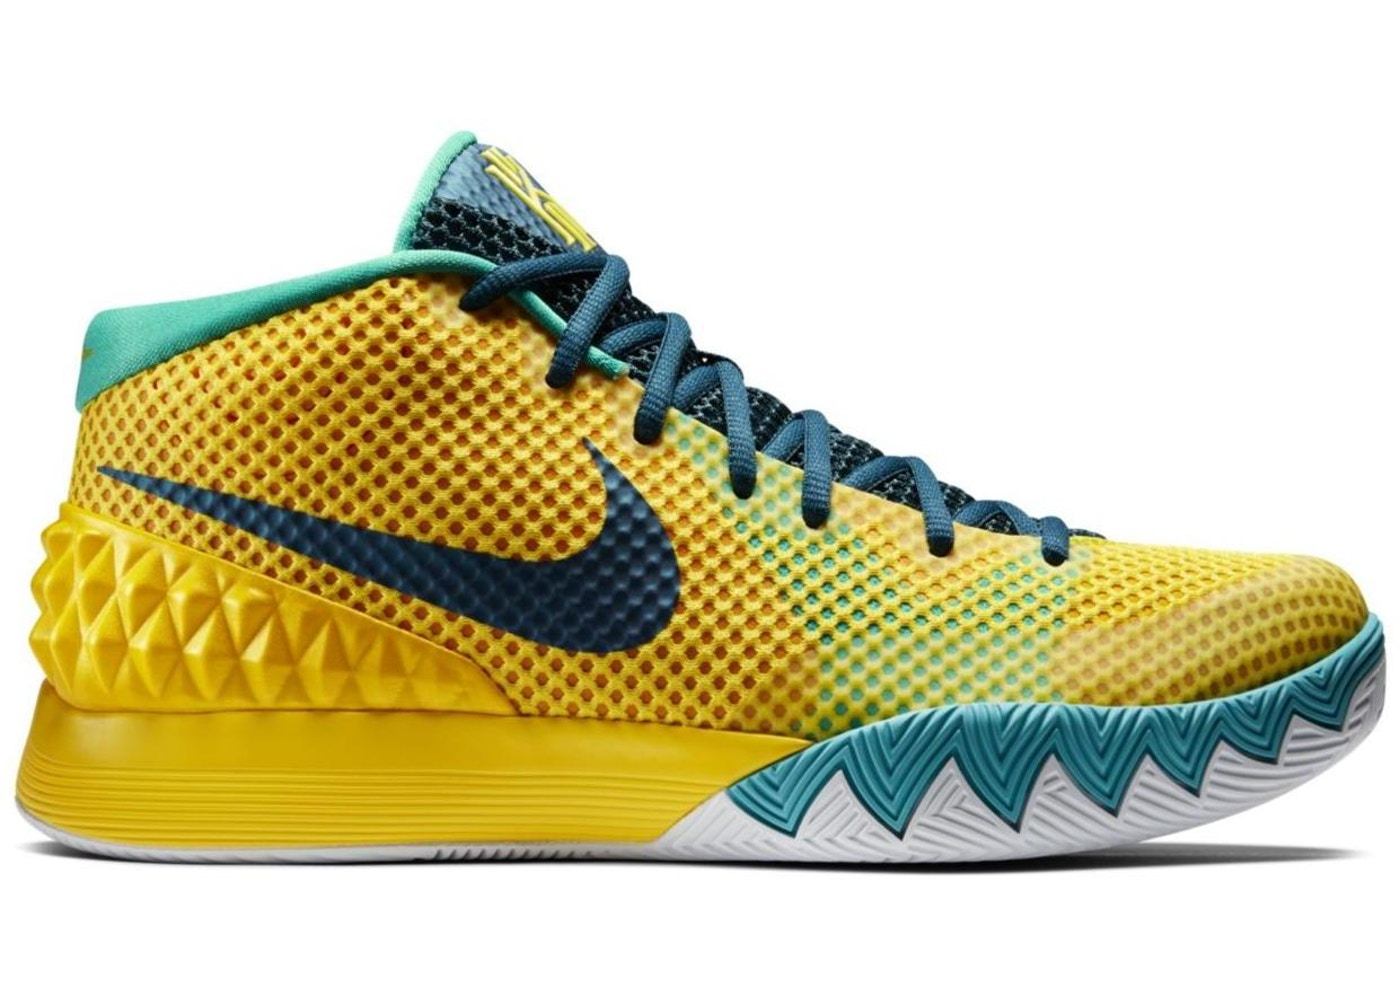 newest 5d6a5 978fa Kyrie 1 Letterman - 705277-737